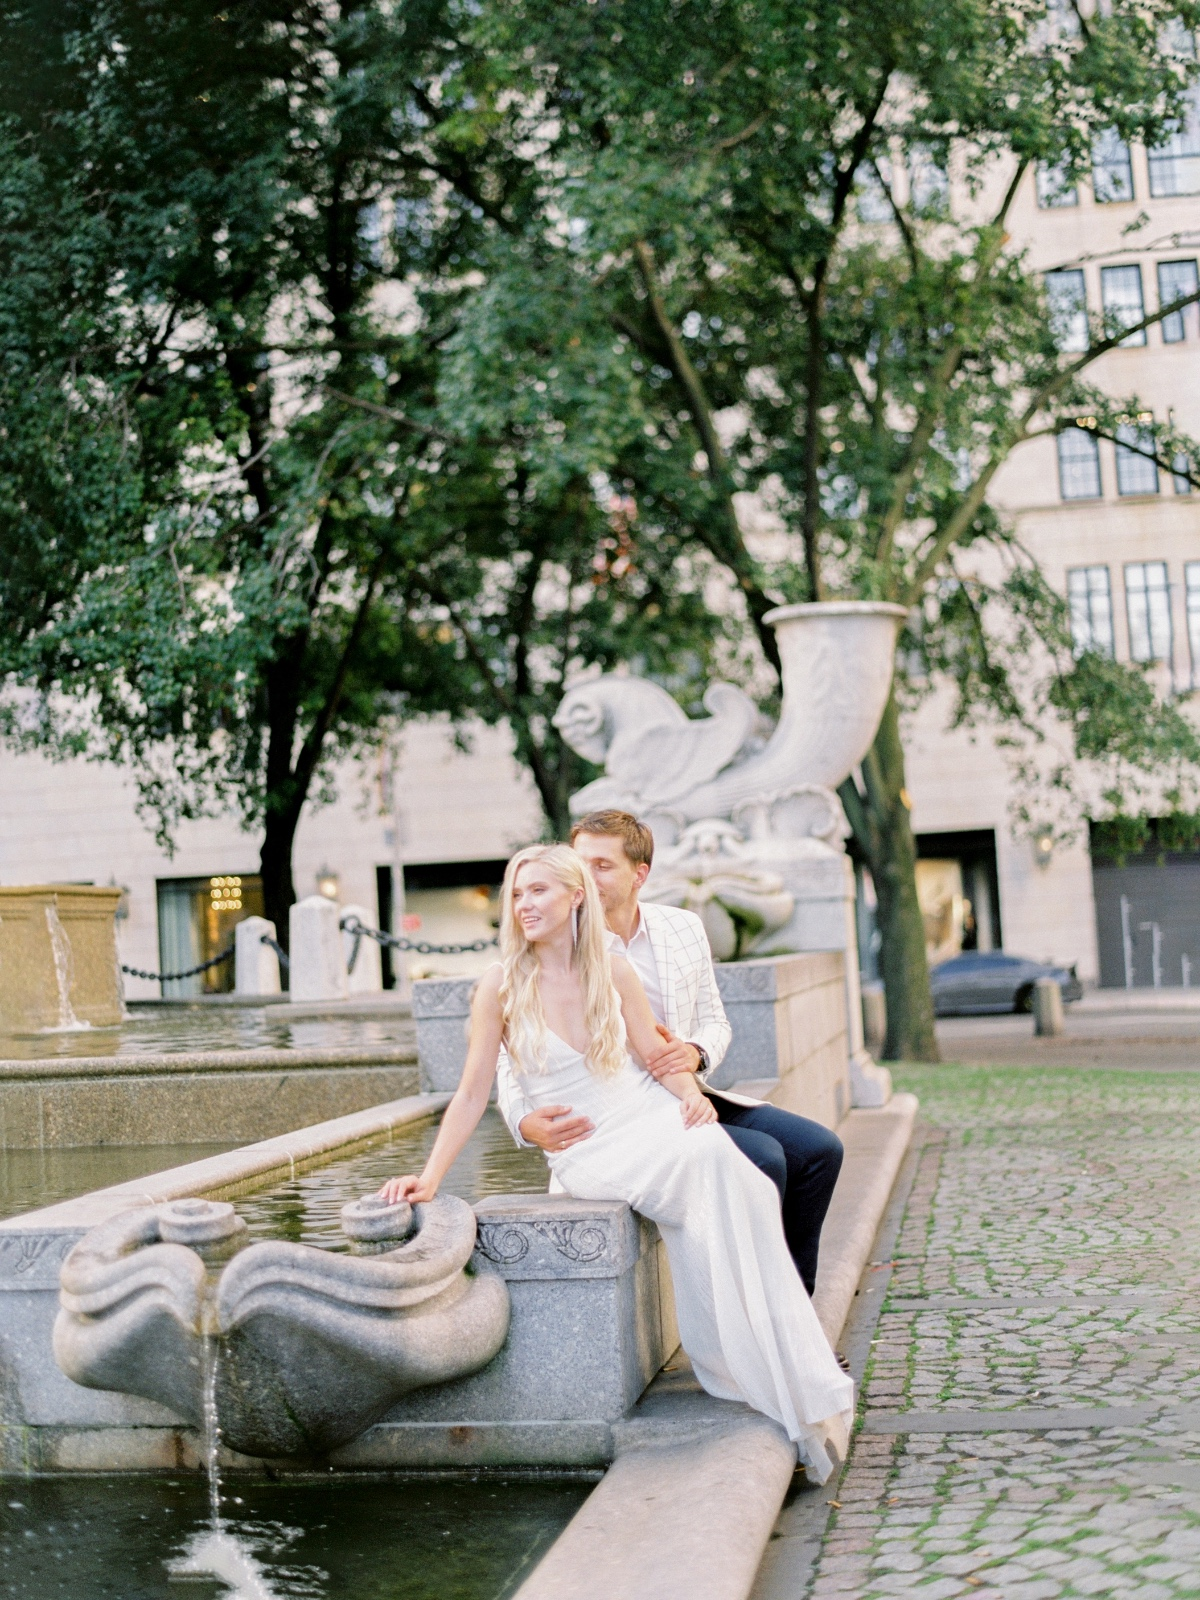 New York engagement session location ideas at Pulitzer Fountain